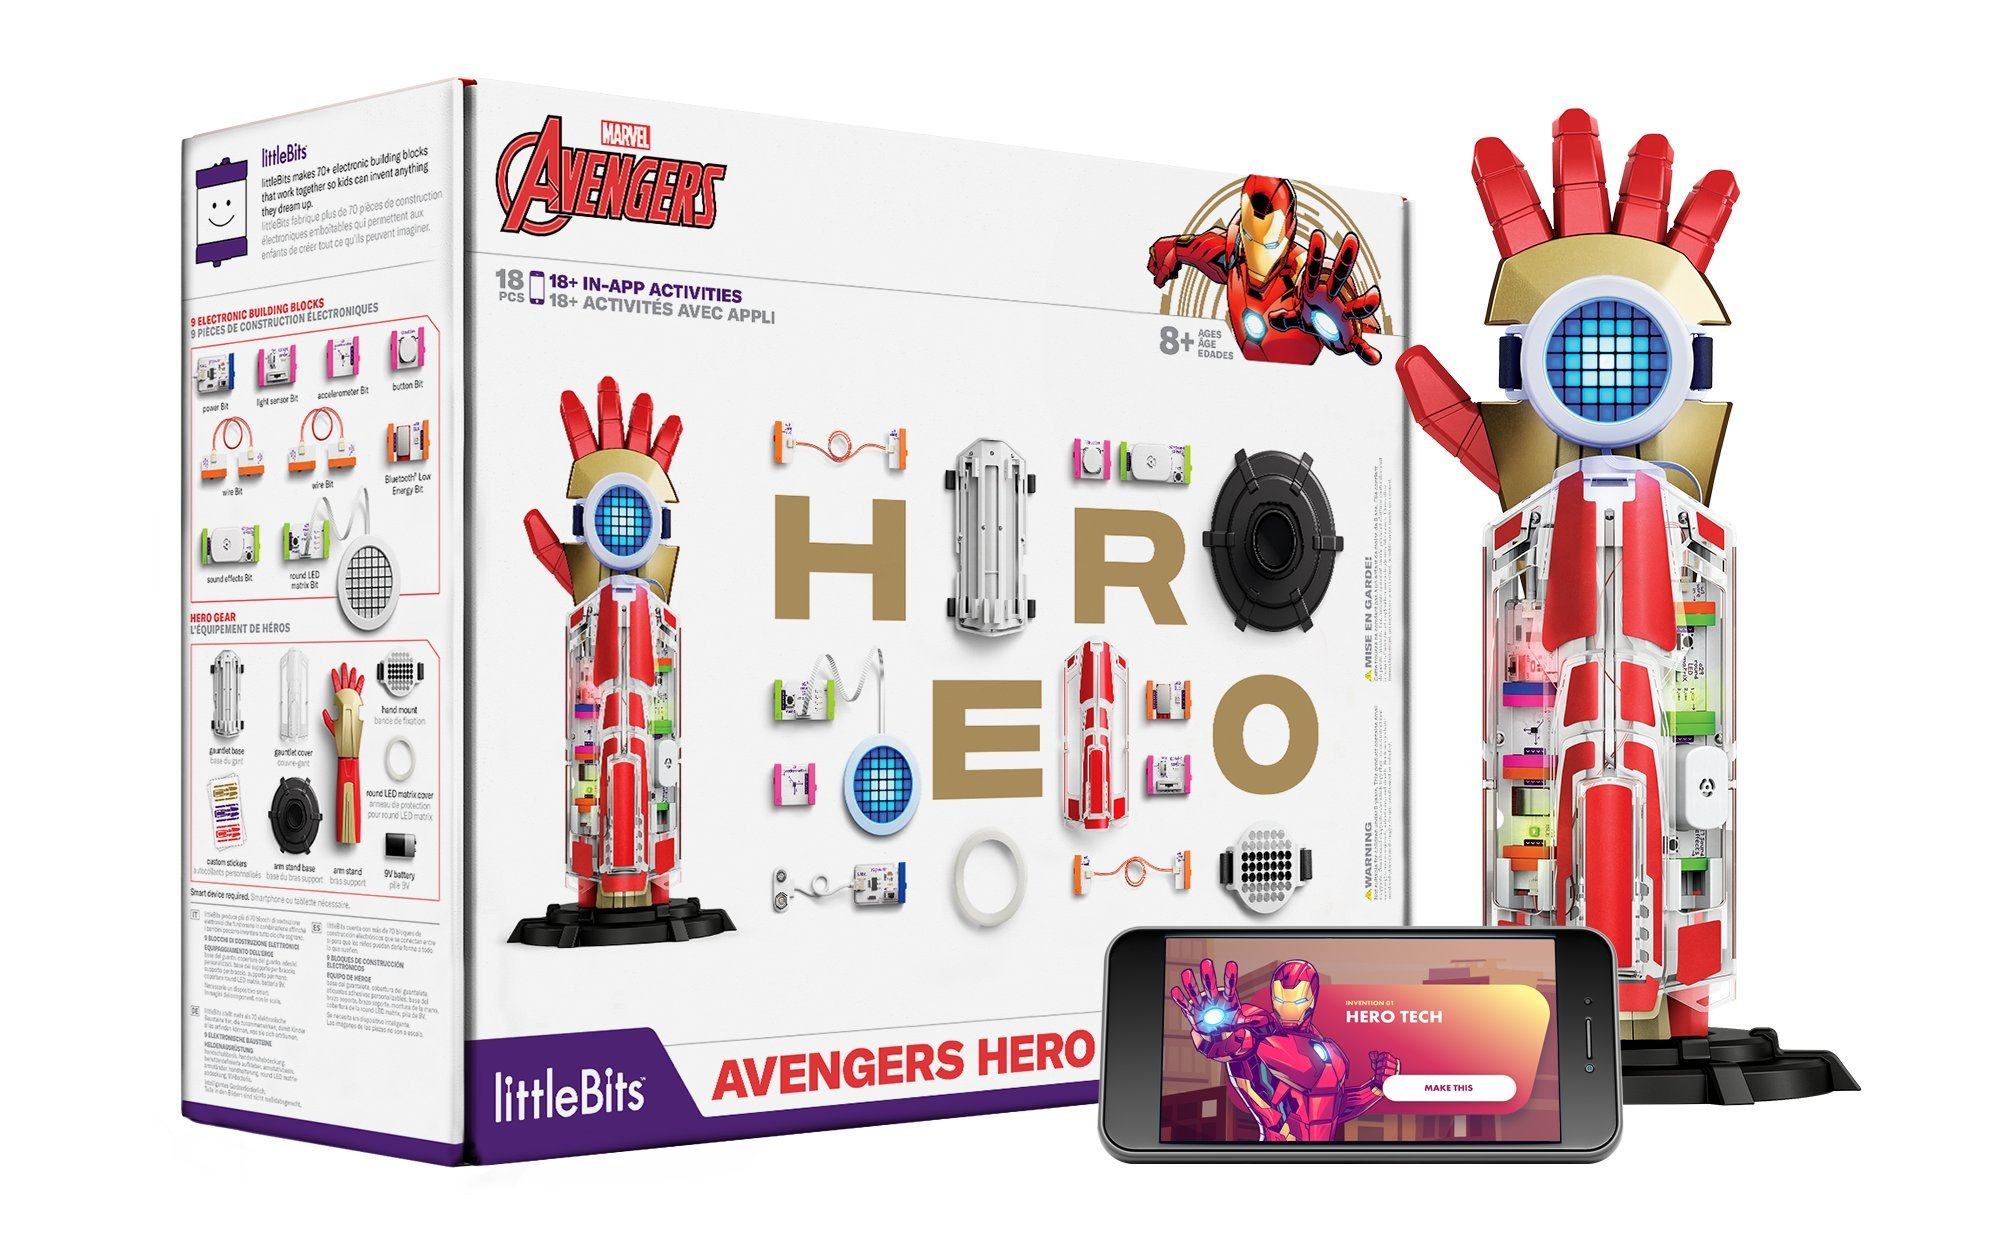 Avengers Hero Inventor Kit - Kids 8+ Build & Customize Electronic Super Hero Gear by littleBits